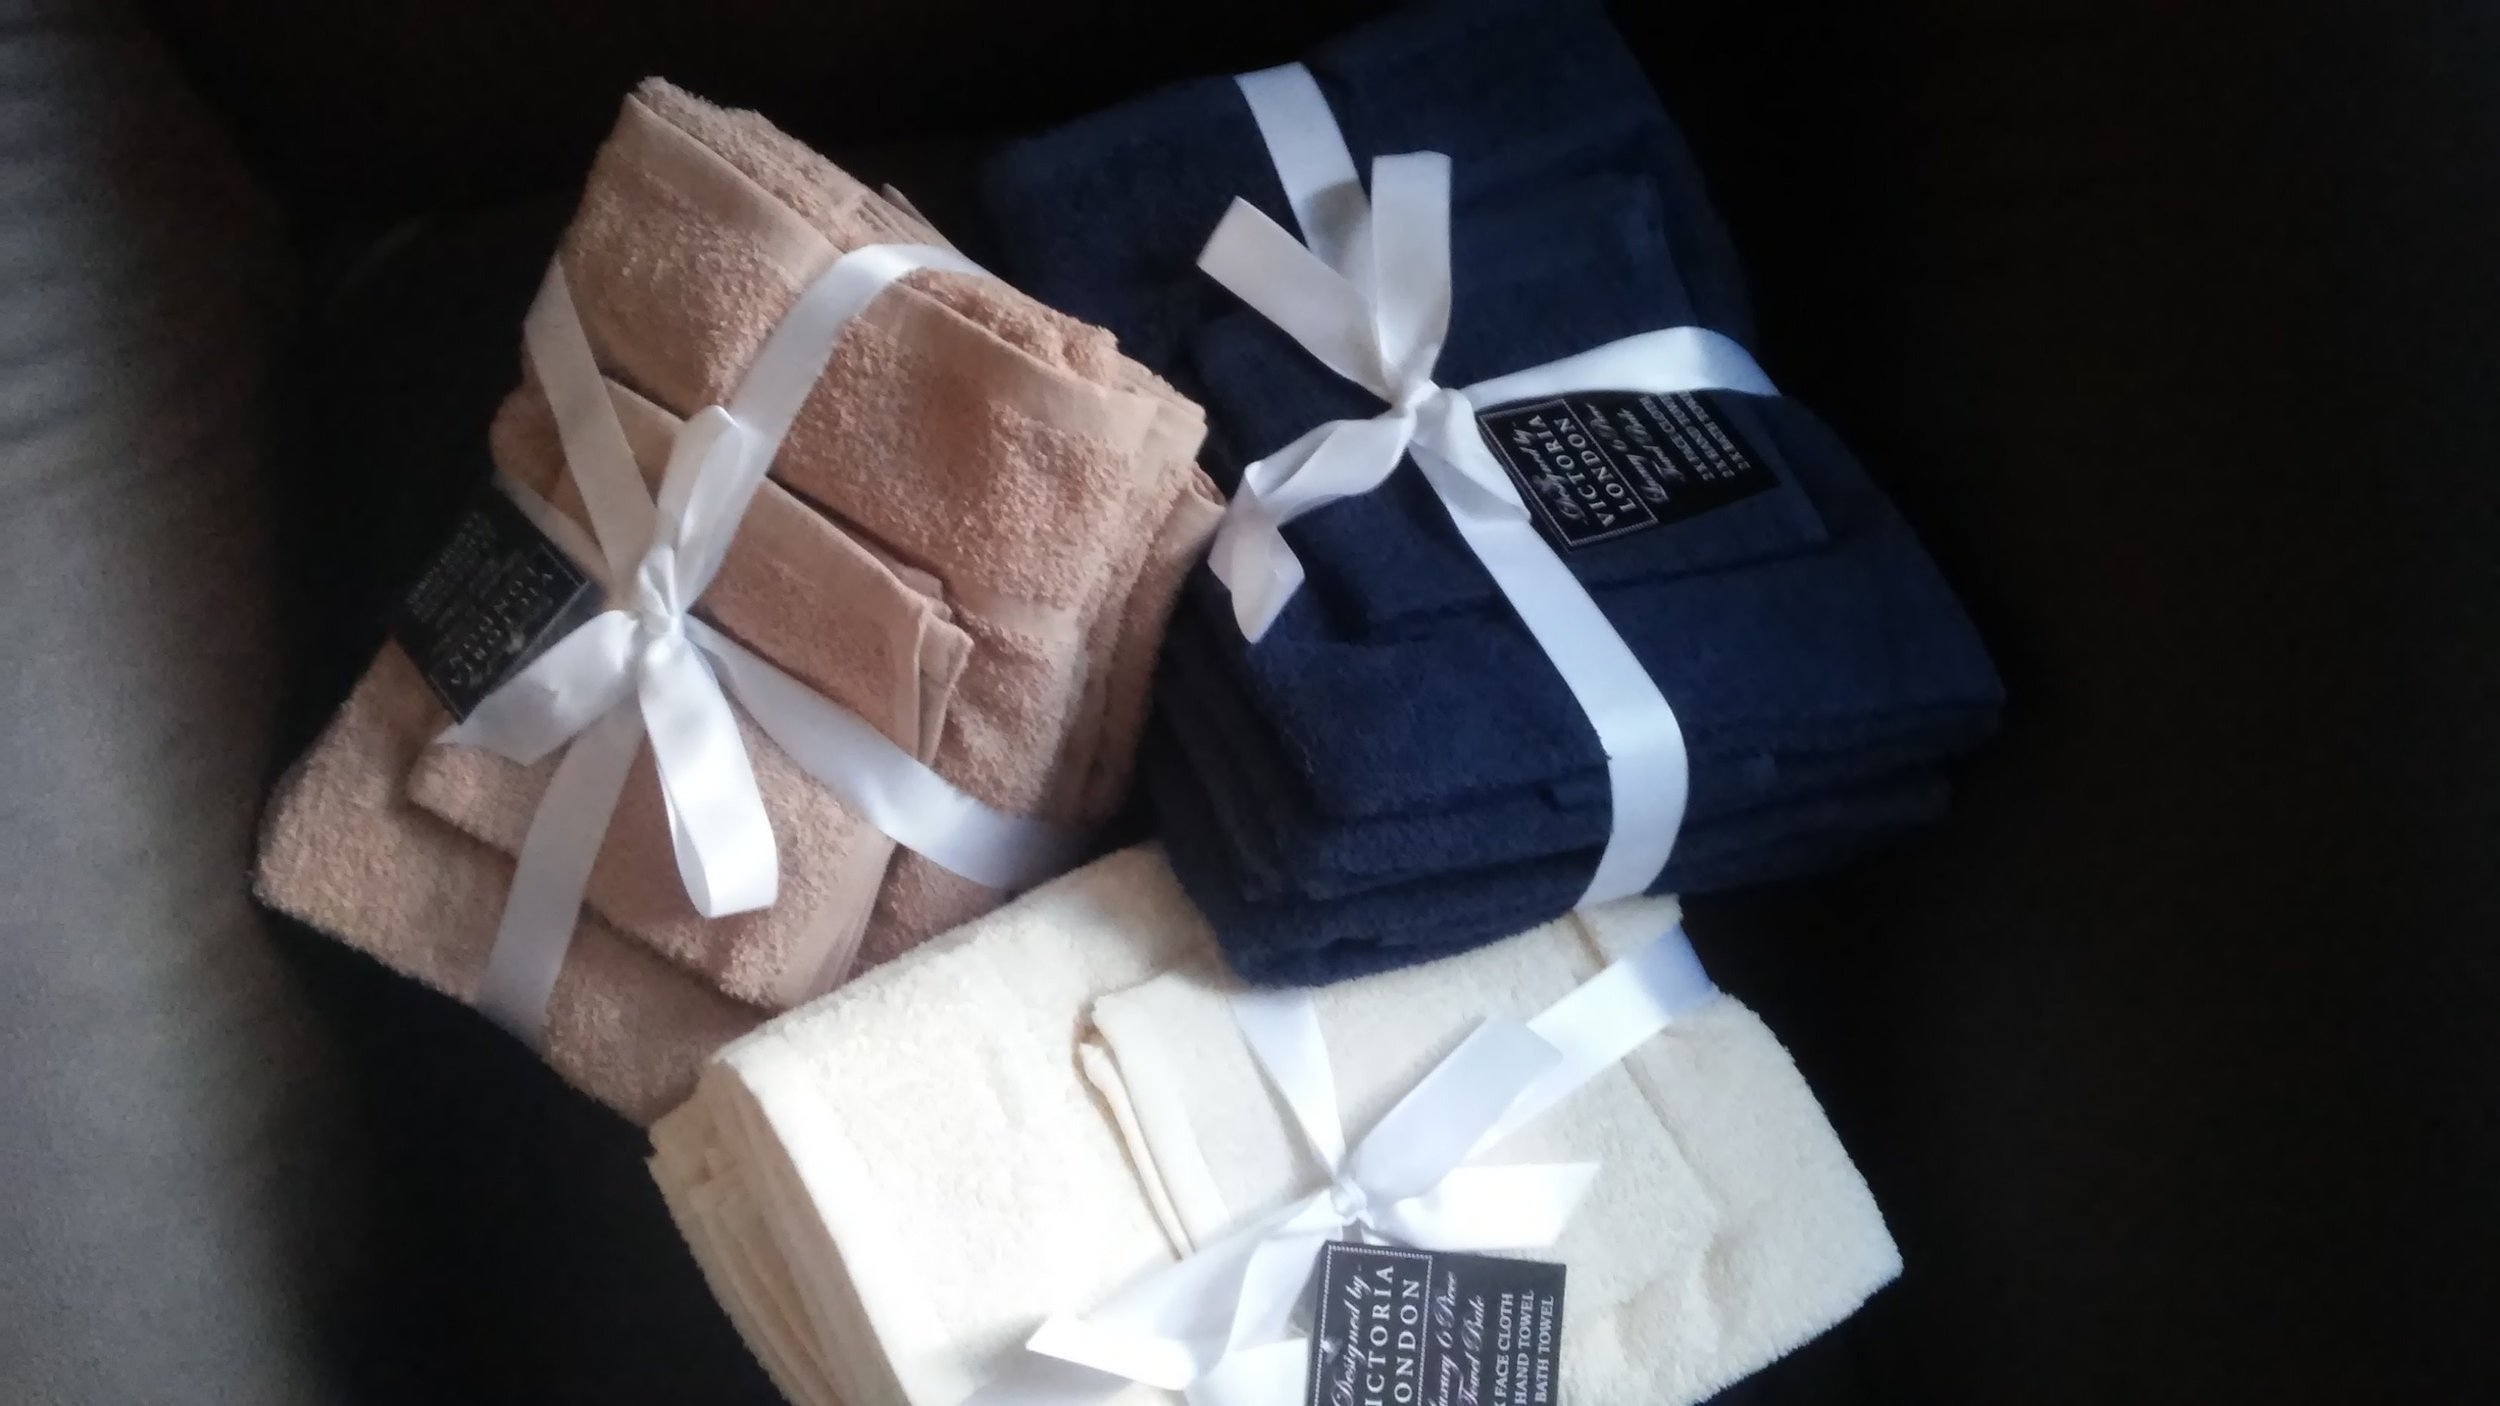 Makeup Towels for your Vacation Home. www.dinamariejoy.co